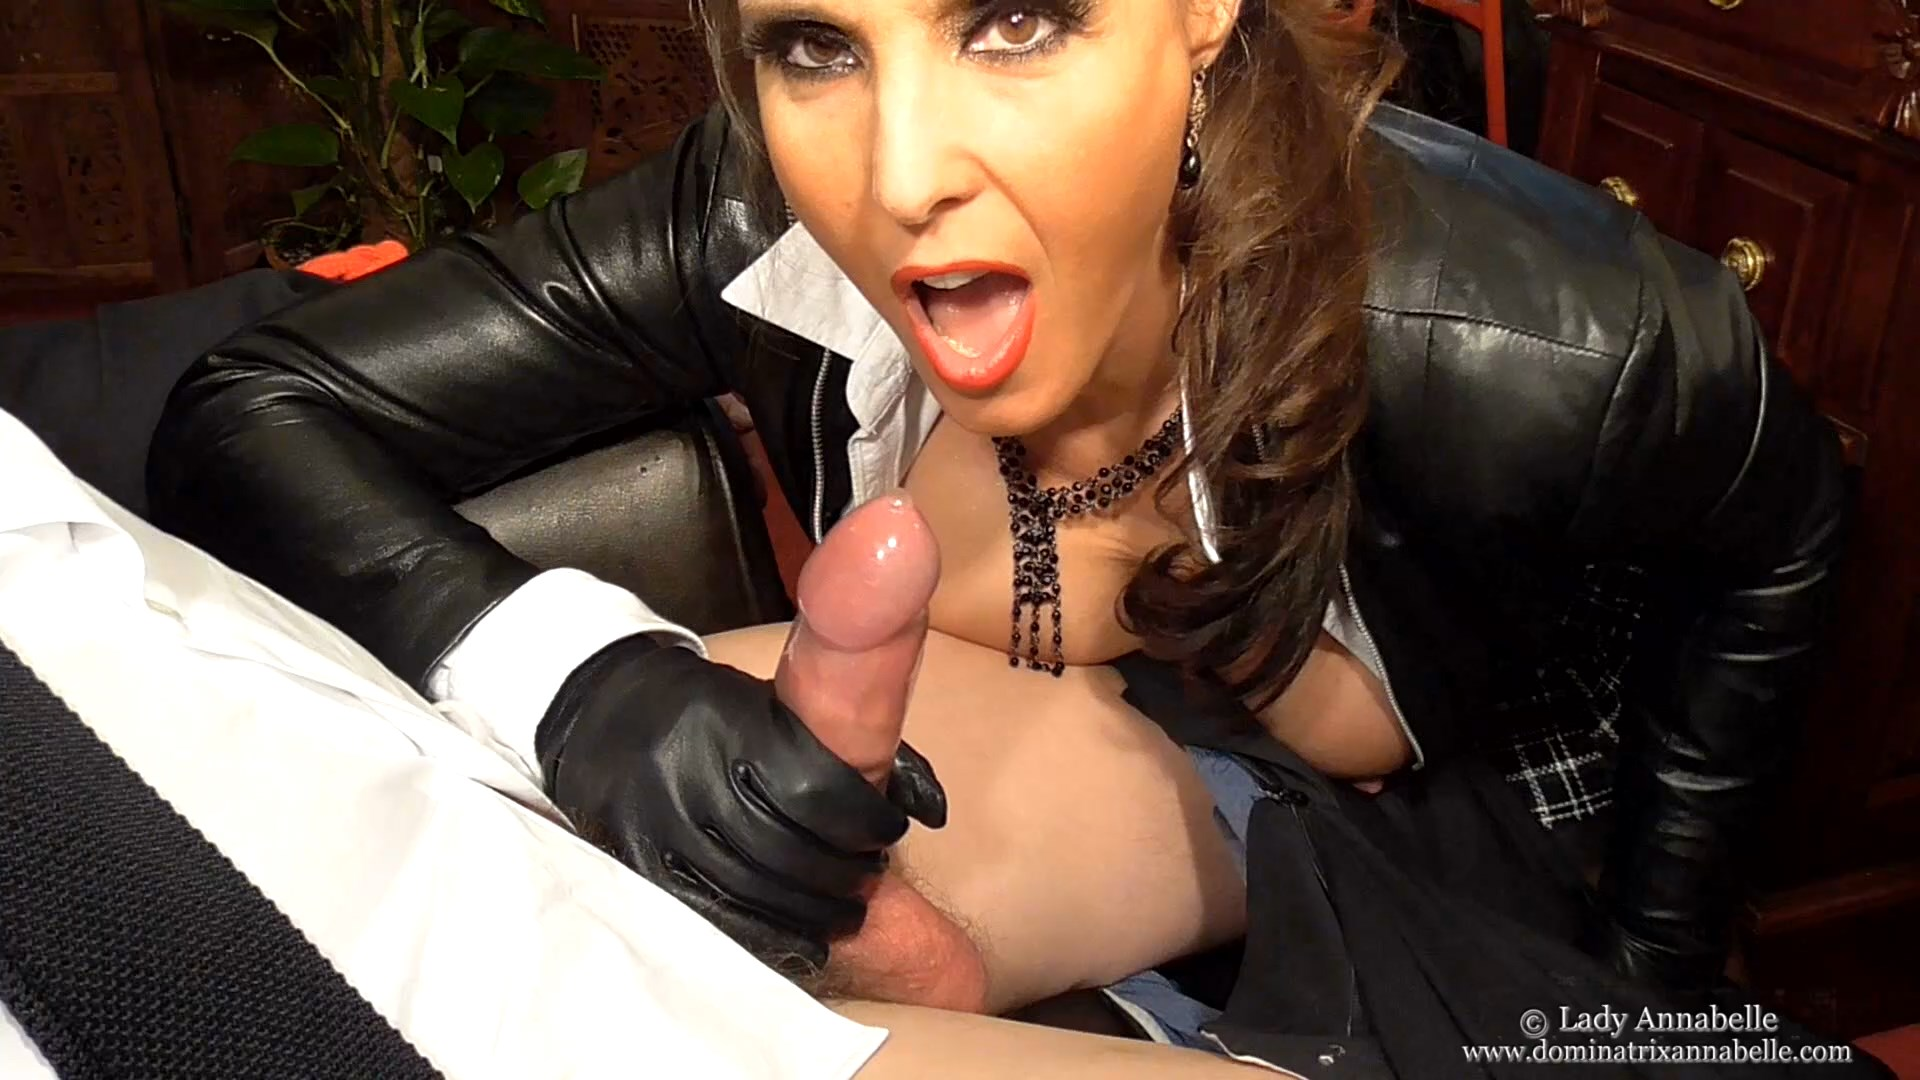 Leather fetish shemale movies, priv video sexe amateur